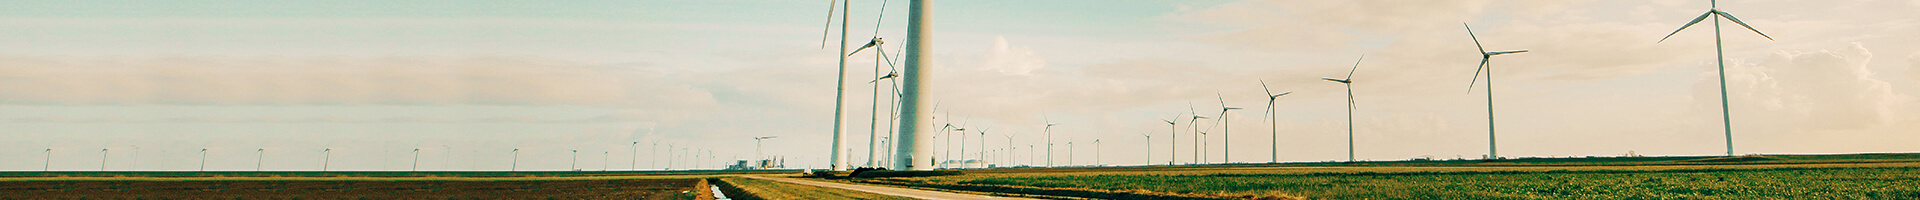 Header image - wind energy farm